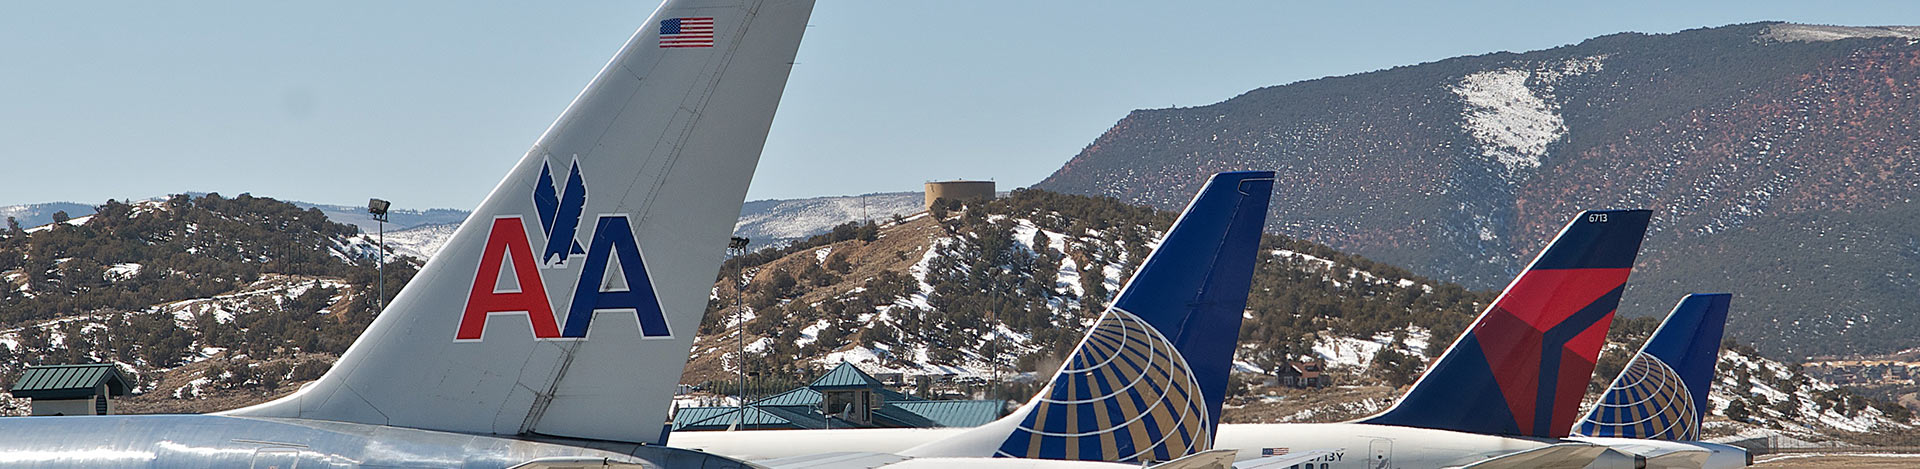 Airport closest to Vail, Co is Eagle County Airport 1920